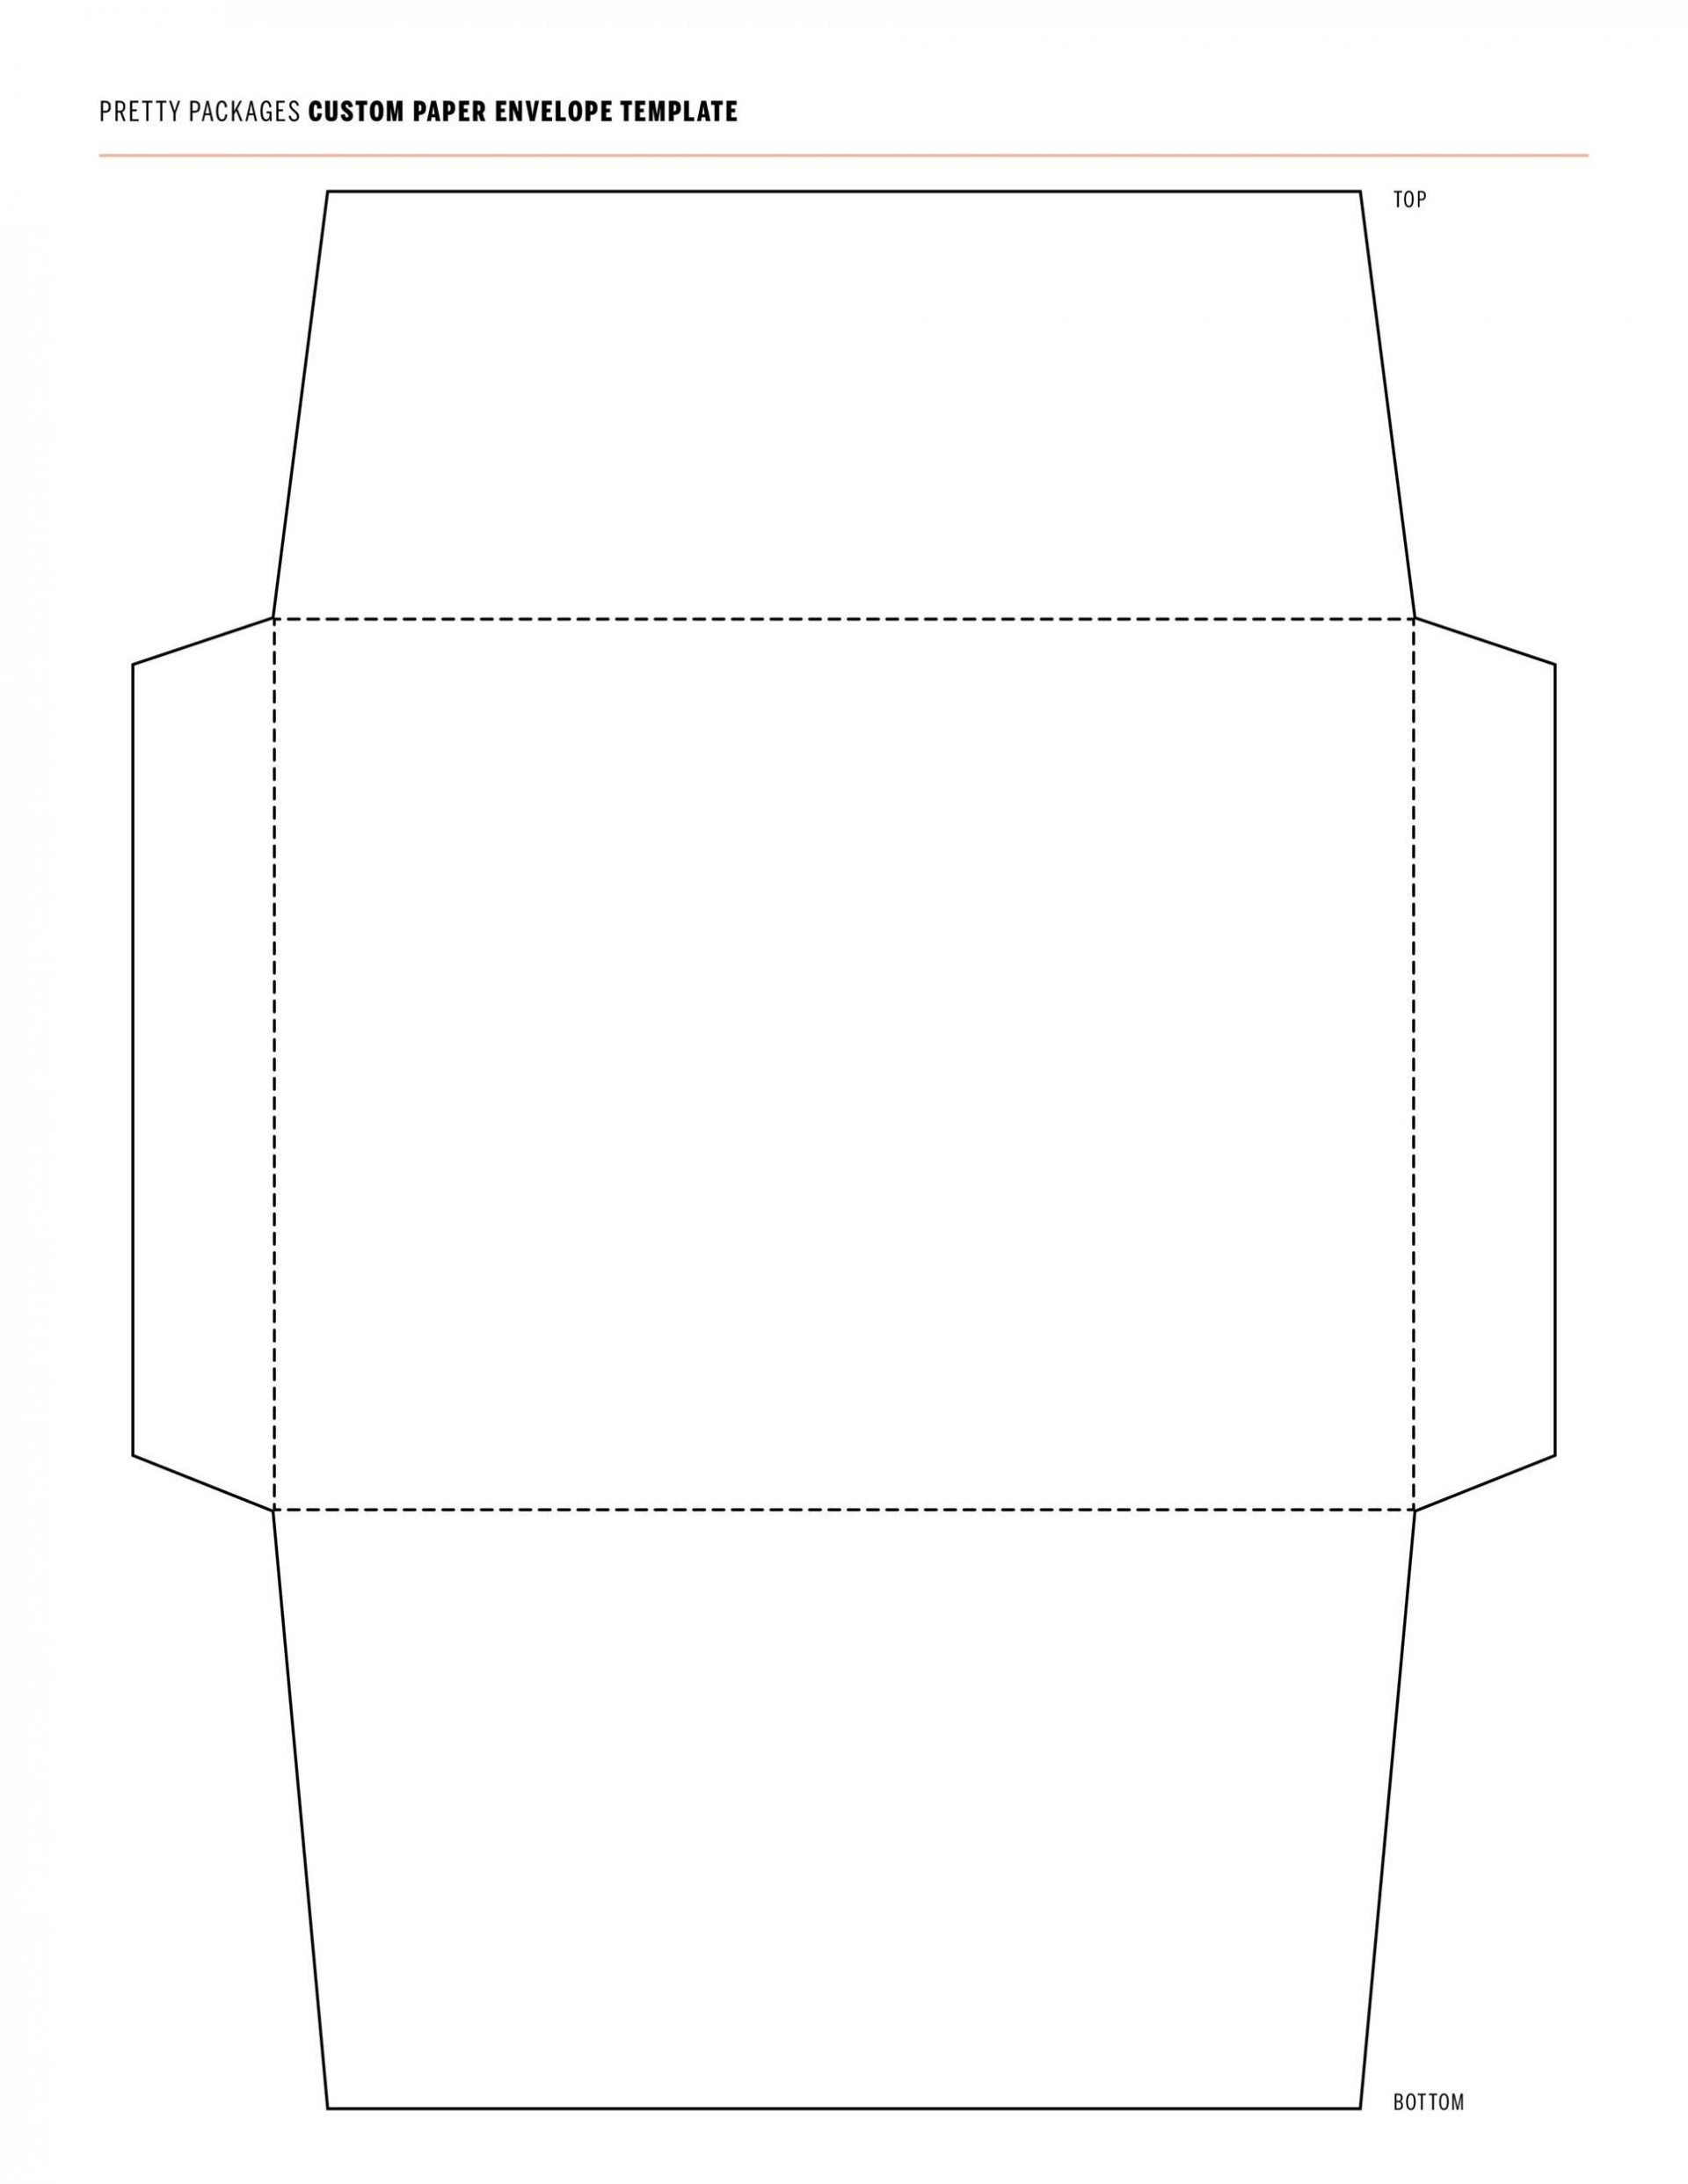 5X7 Envelopes Template from www.addictionary.org